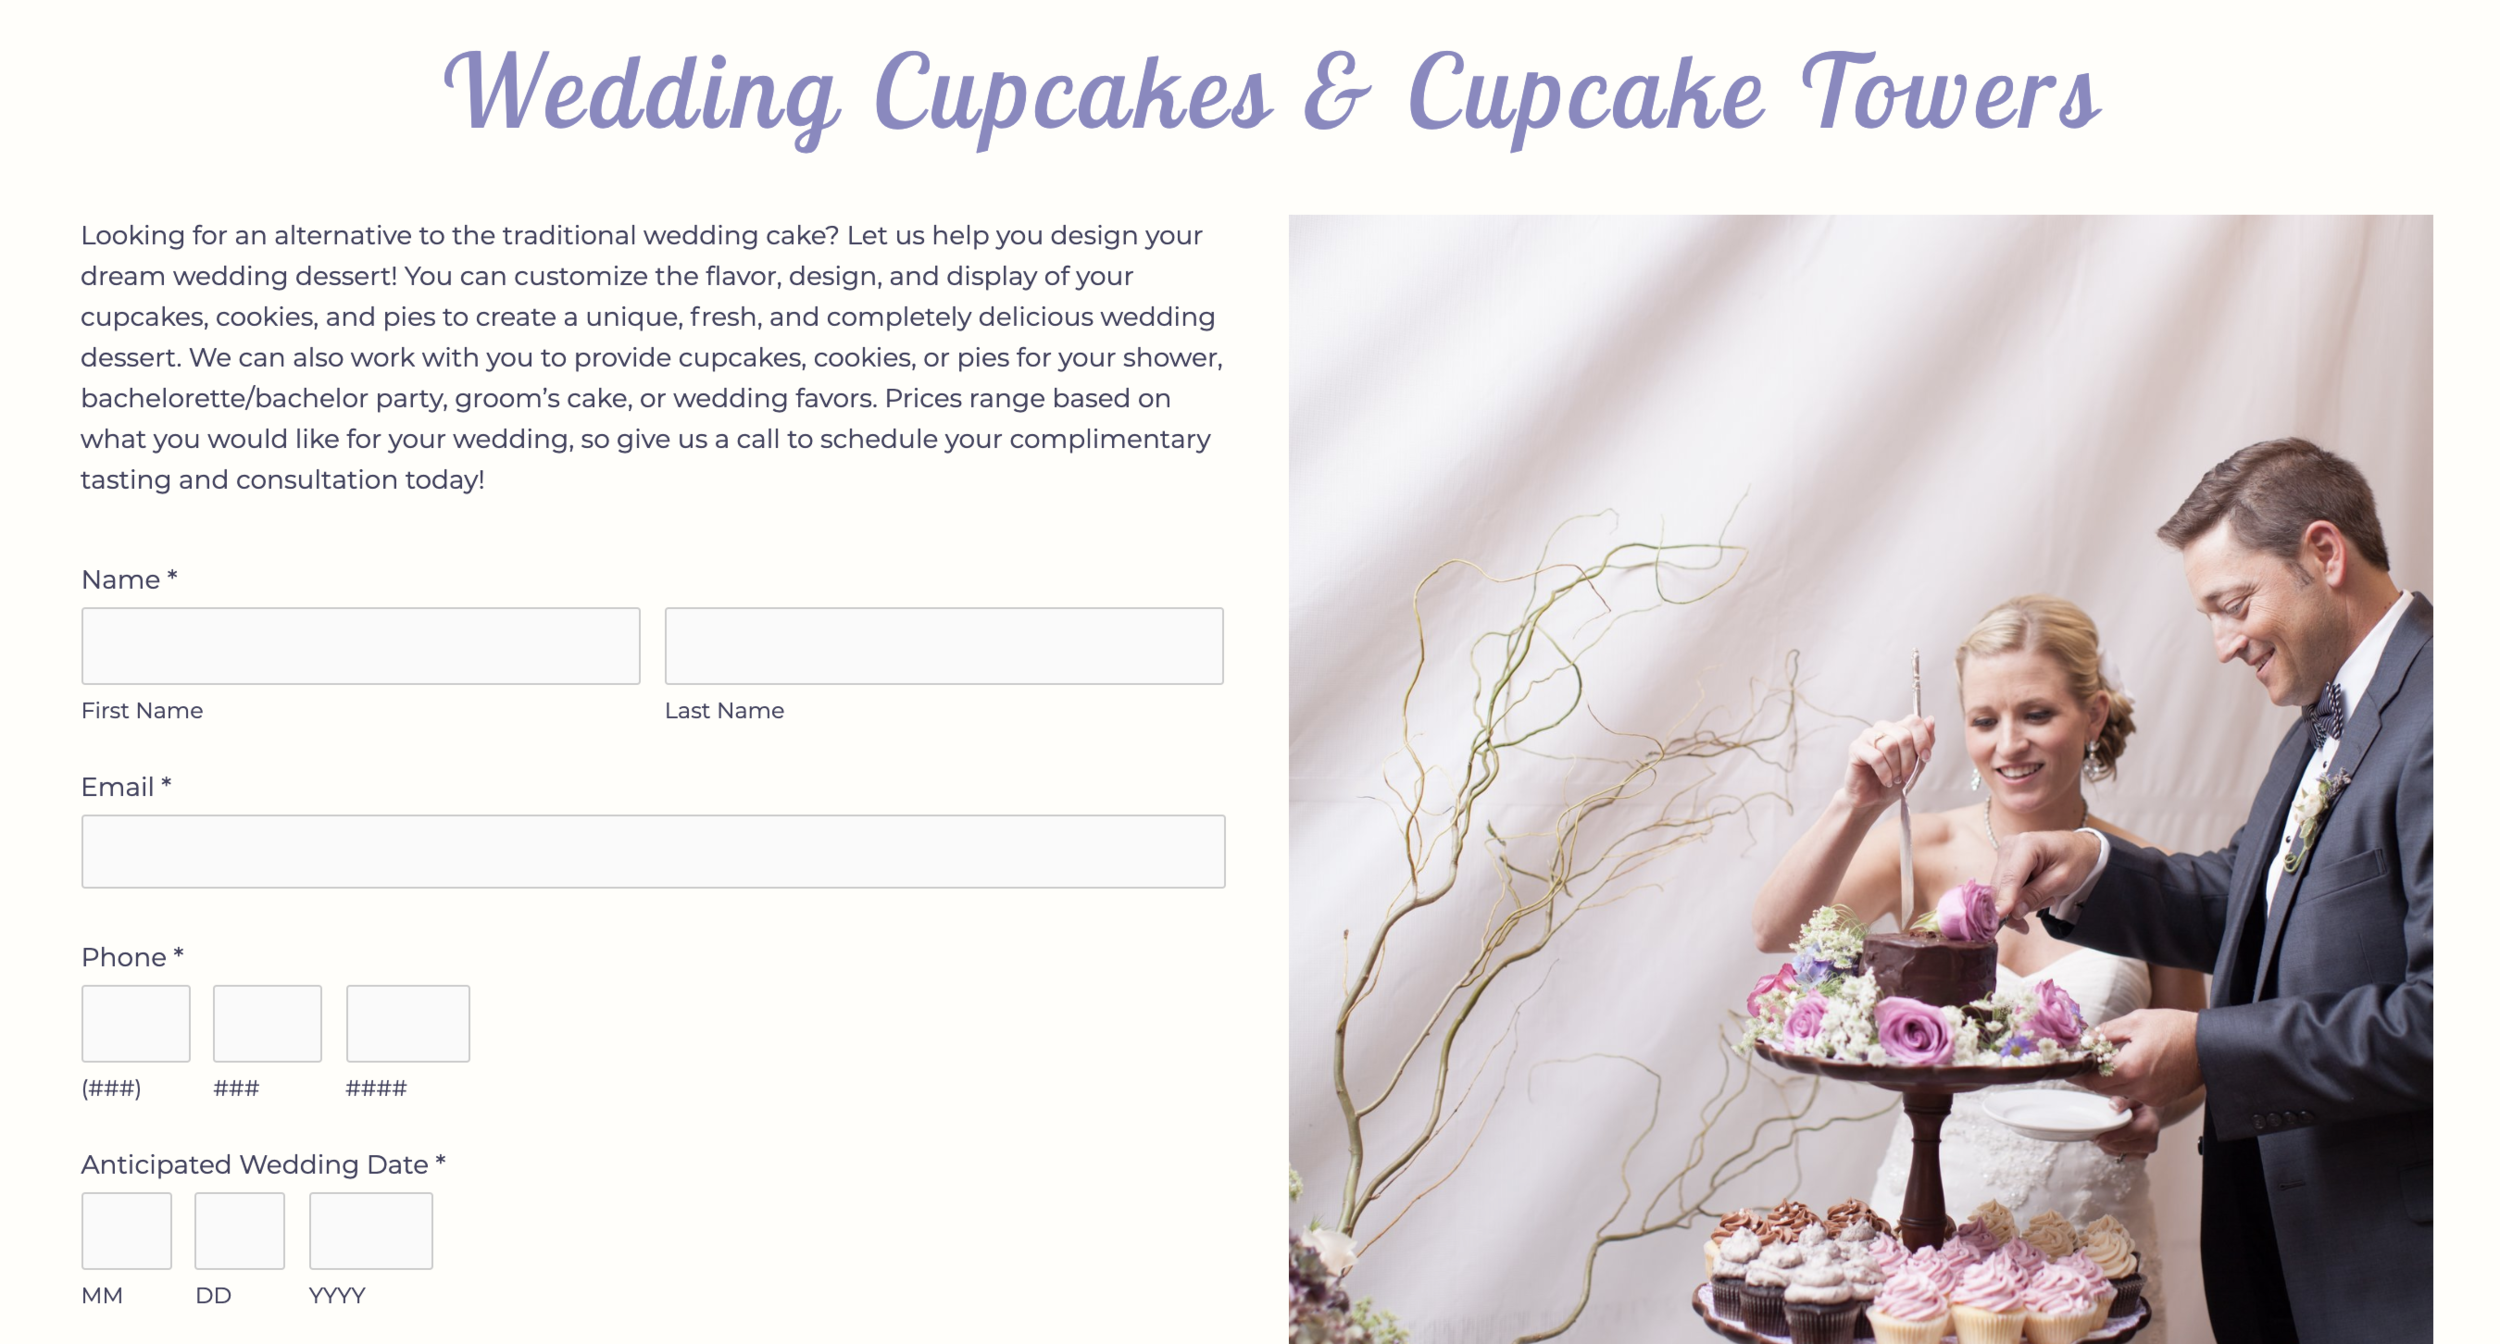 Ordering cupcakes for a wedding made easy on the website